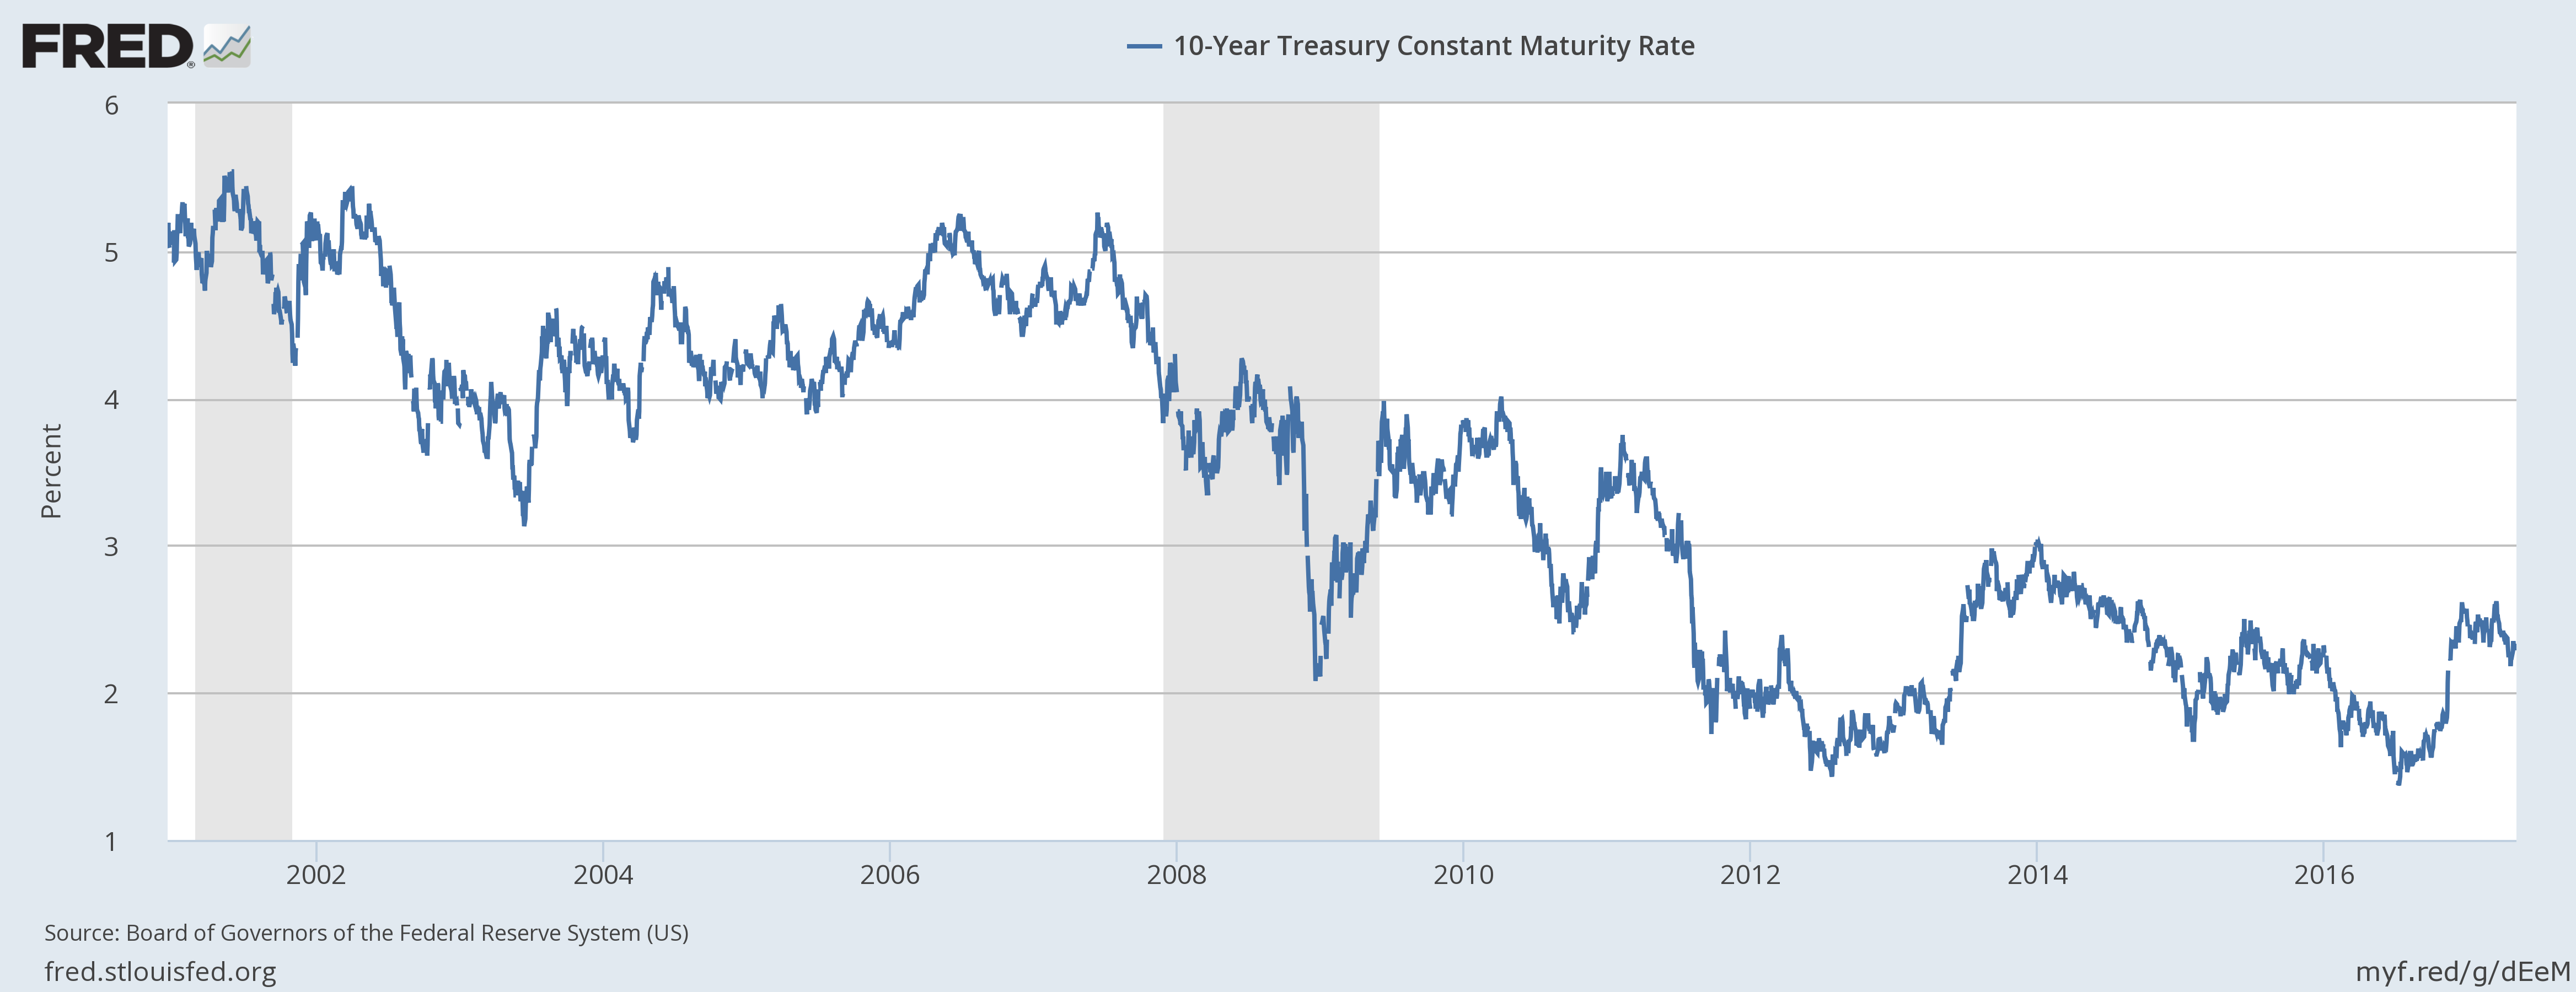 10-Year Treasury Constant Maturity Rate from 2002